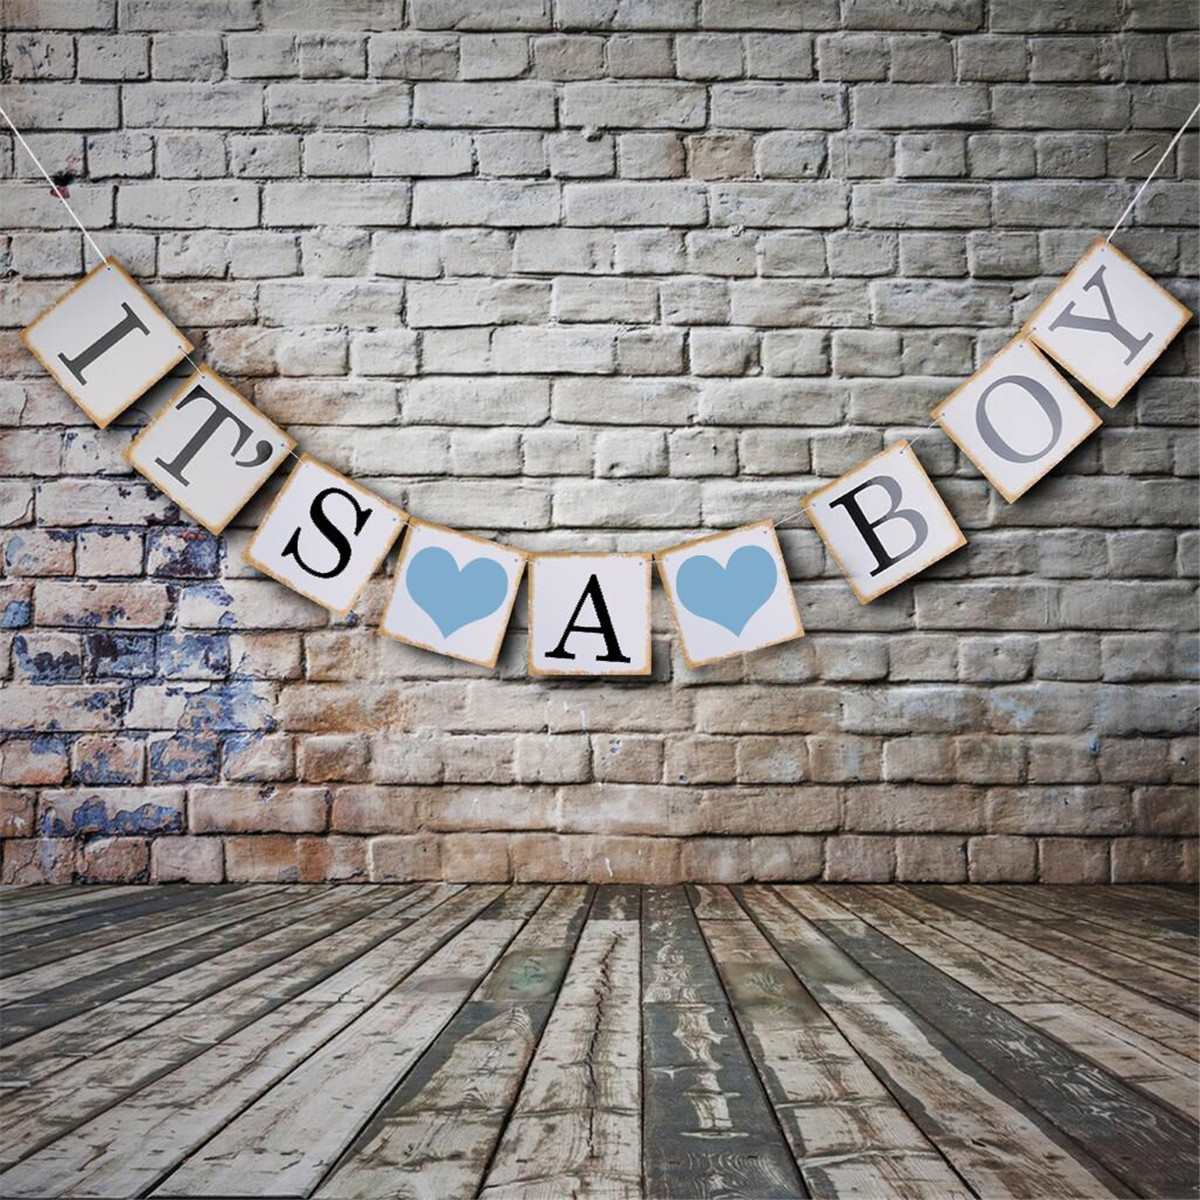 Online buy wholesale baby shower text from china baby shower text ...